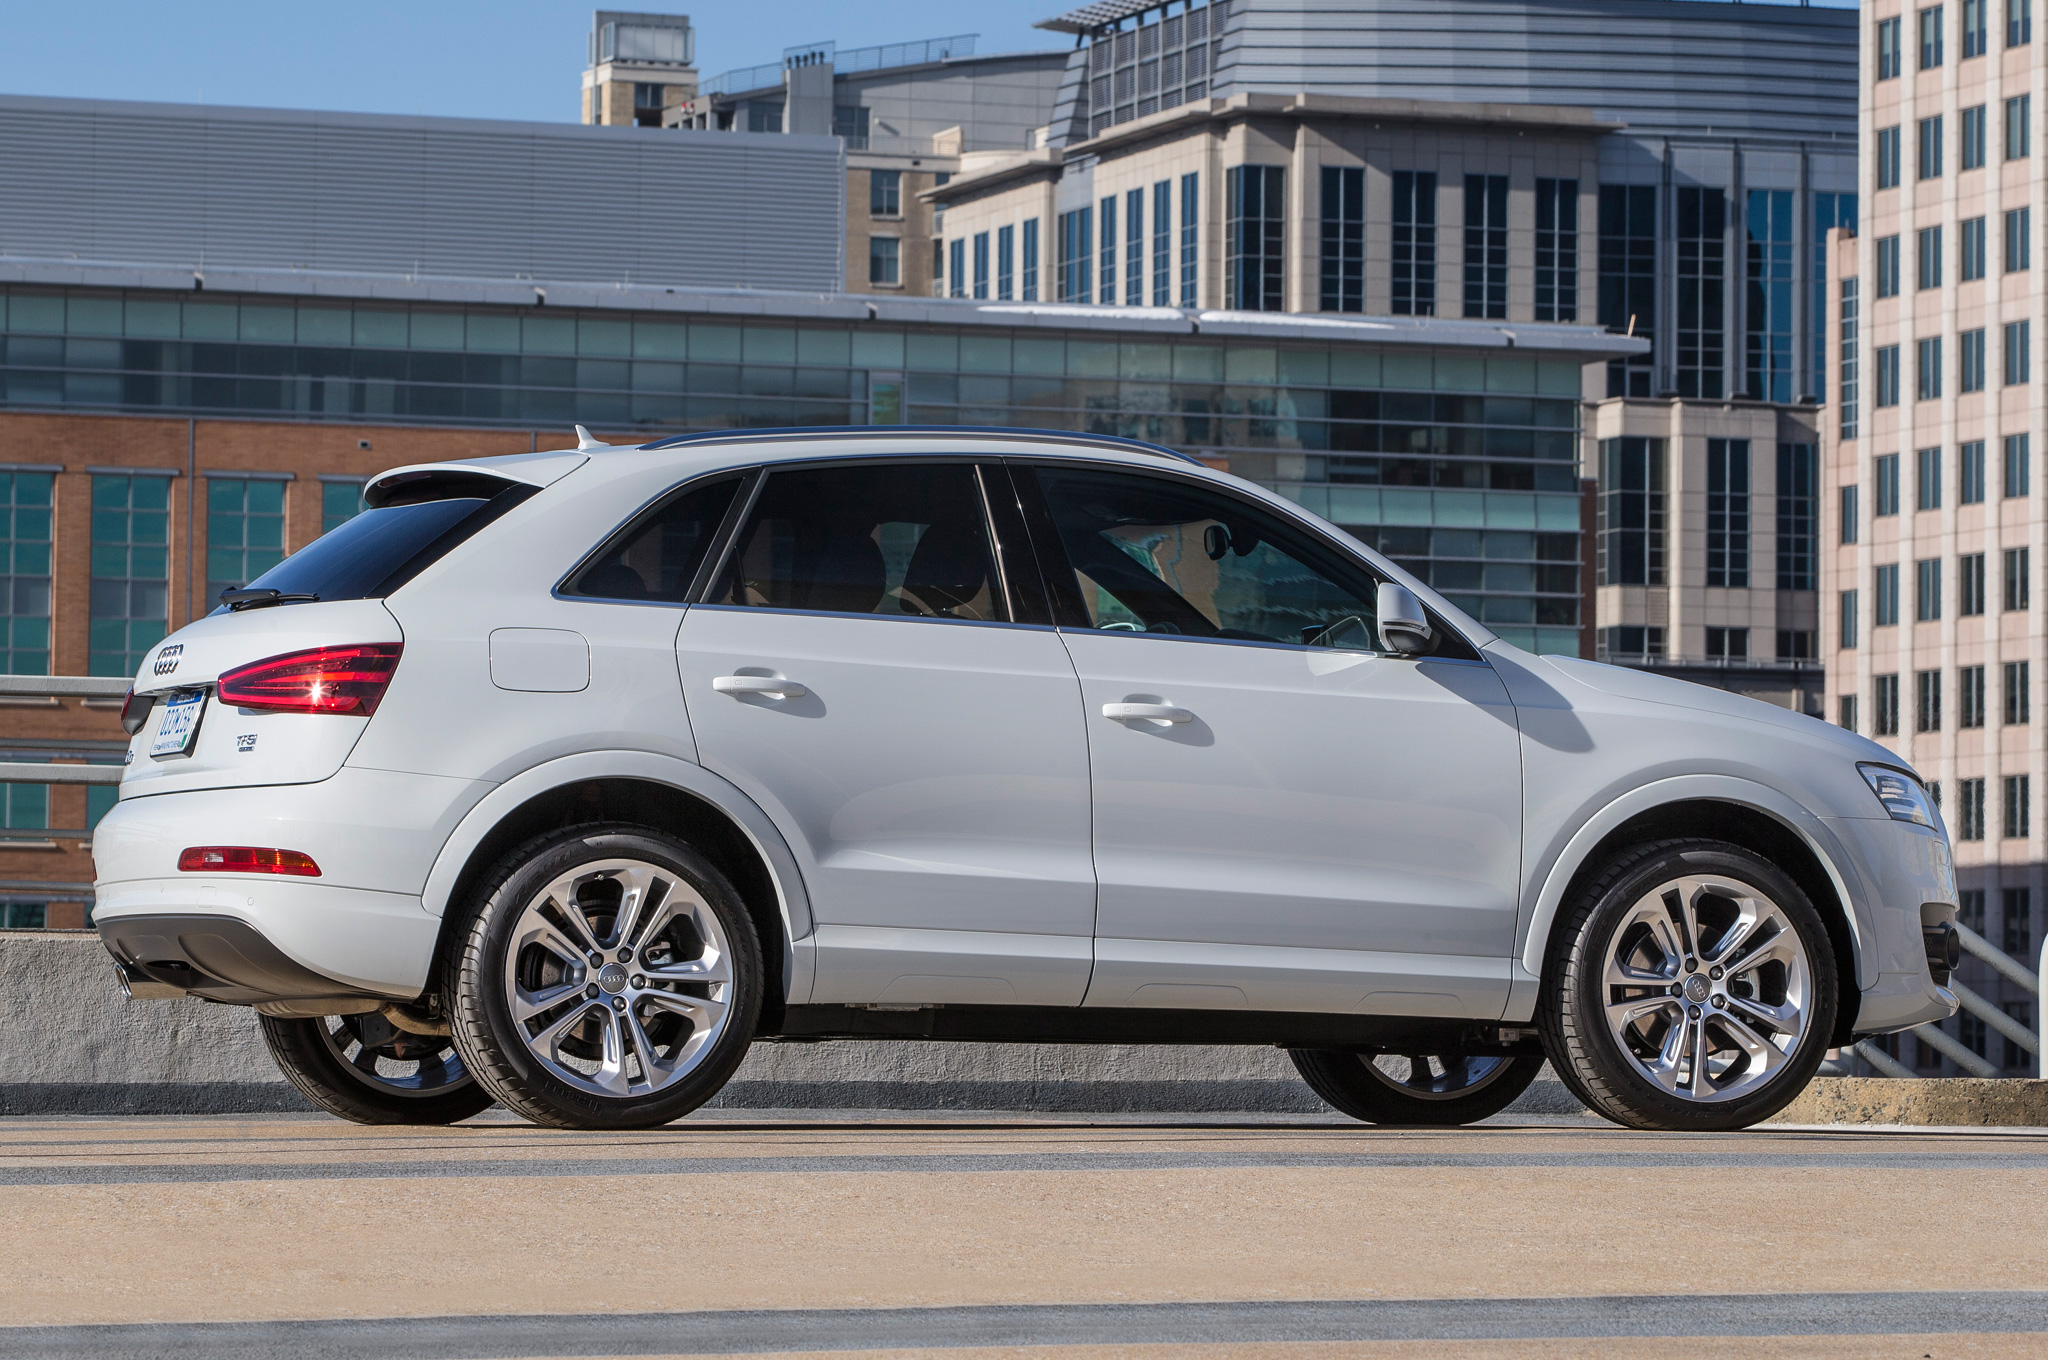 2015 Audi Q3 White (Photo 18 of 21)